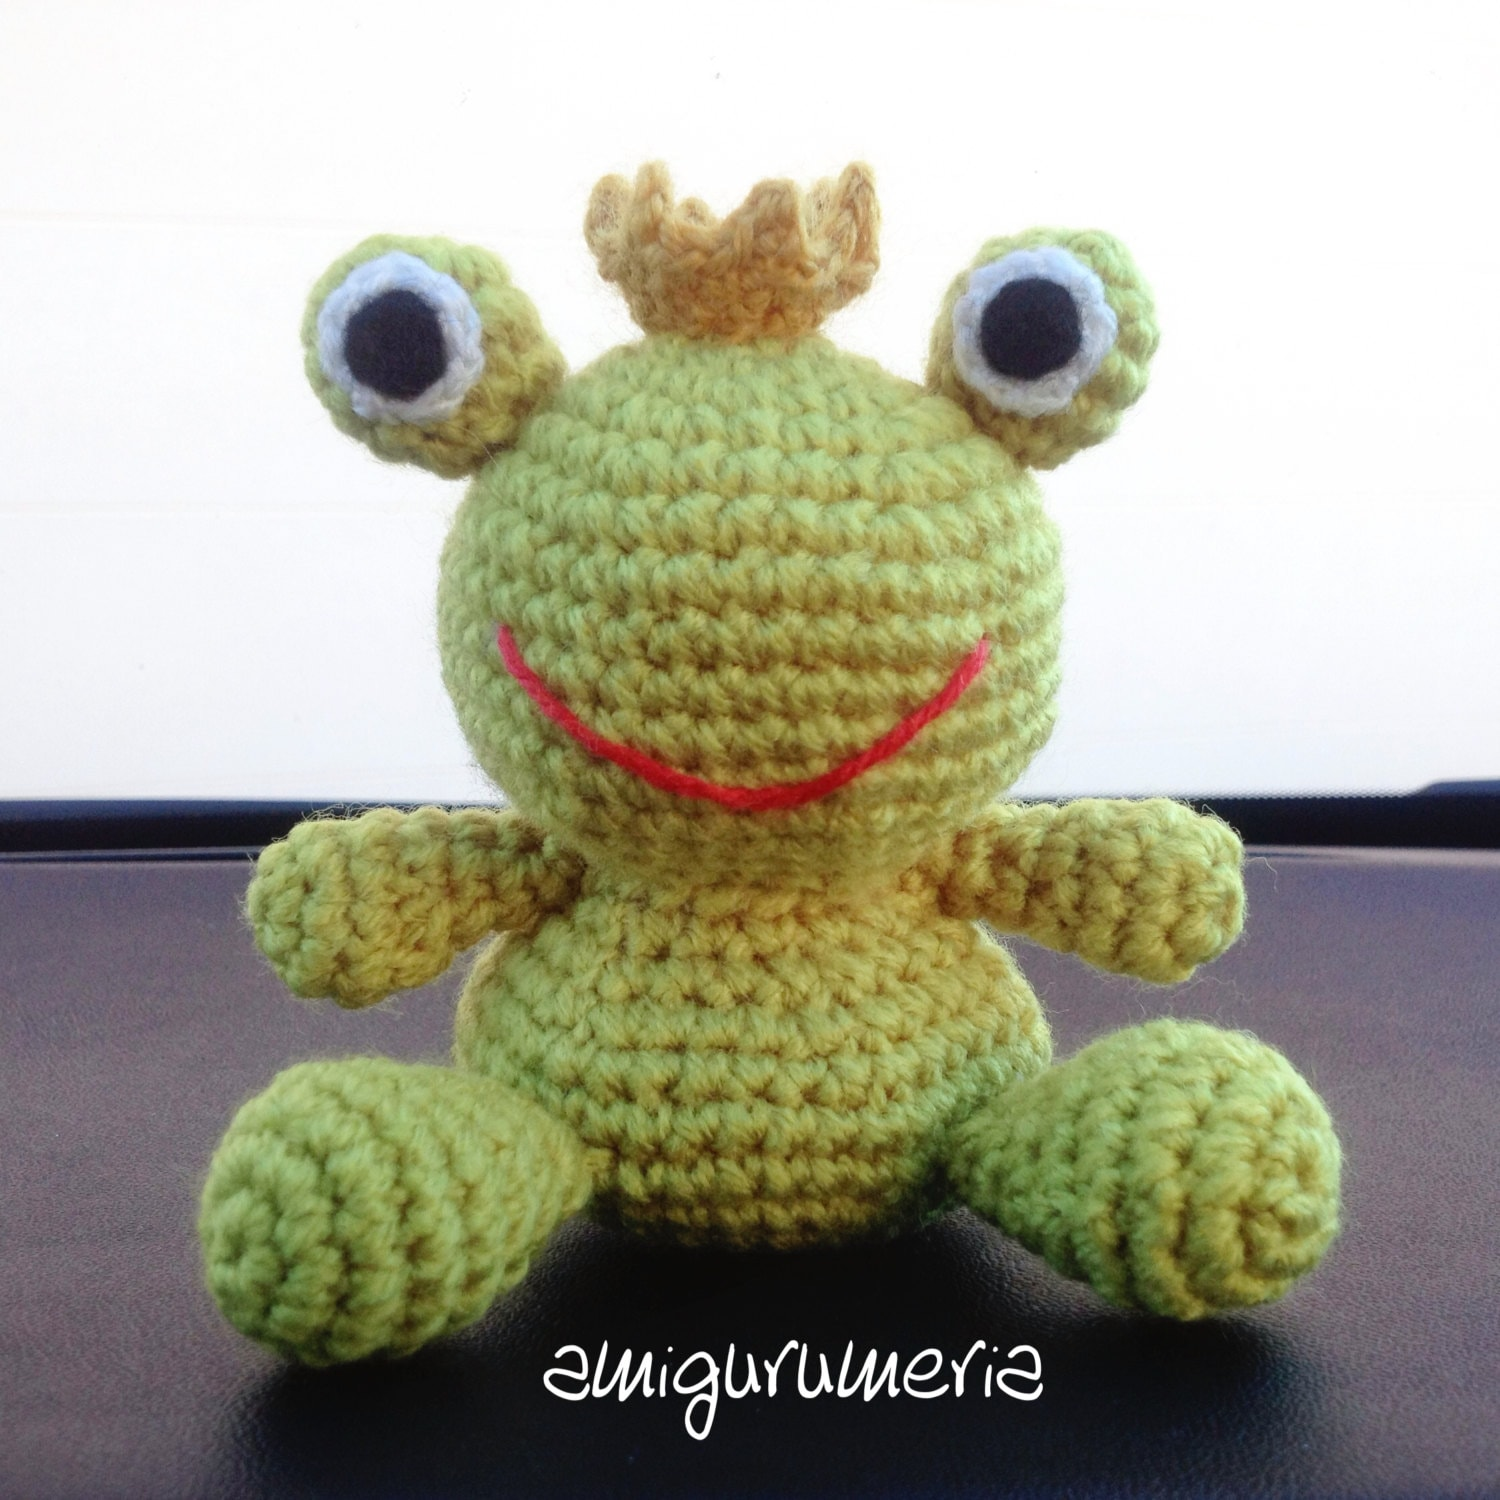 Learn Crochet : learn how to crochet basic beginner amigurumi smiley